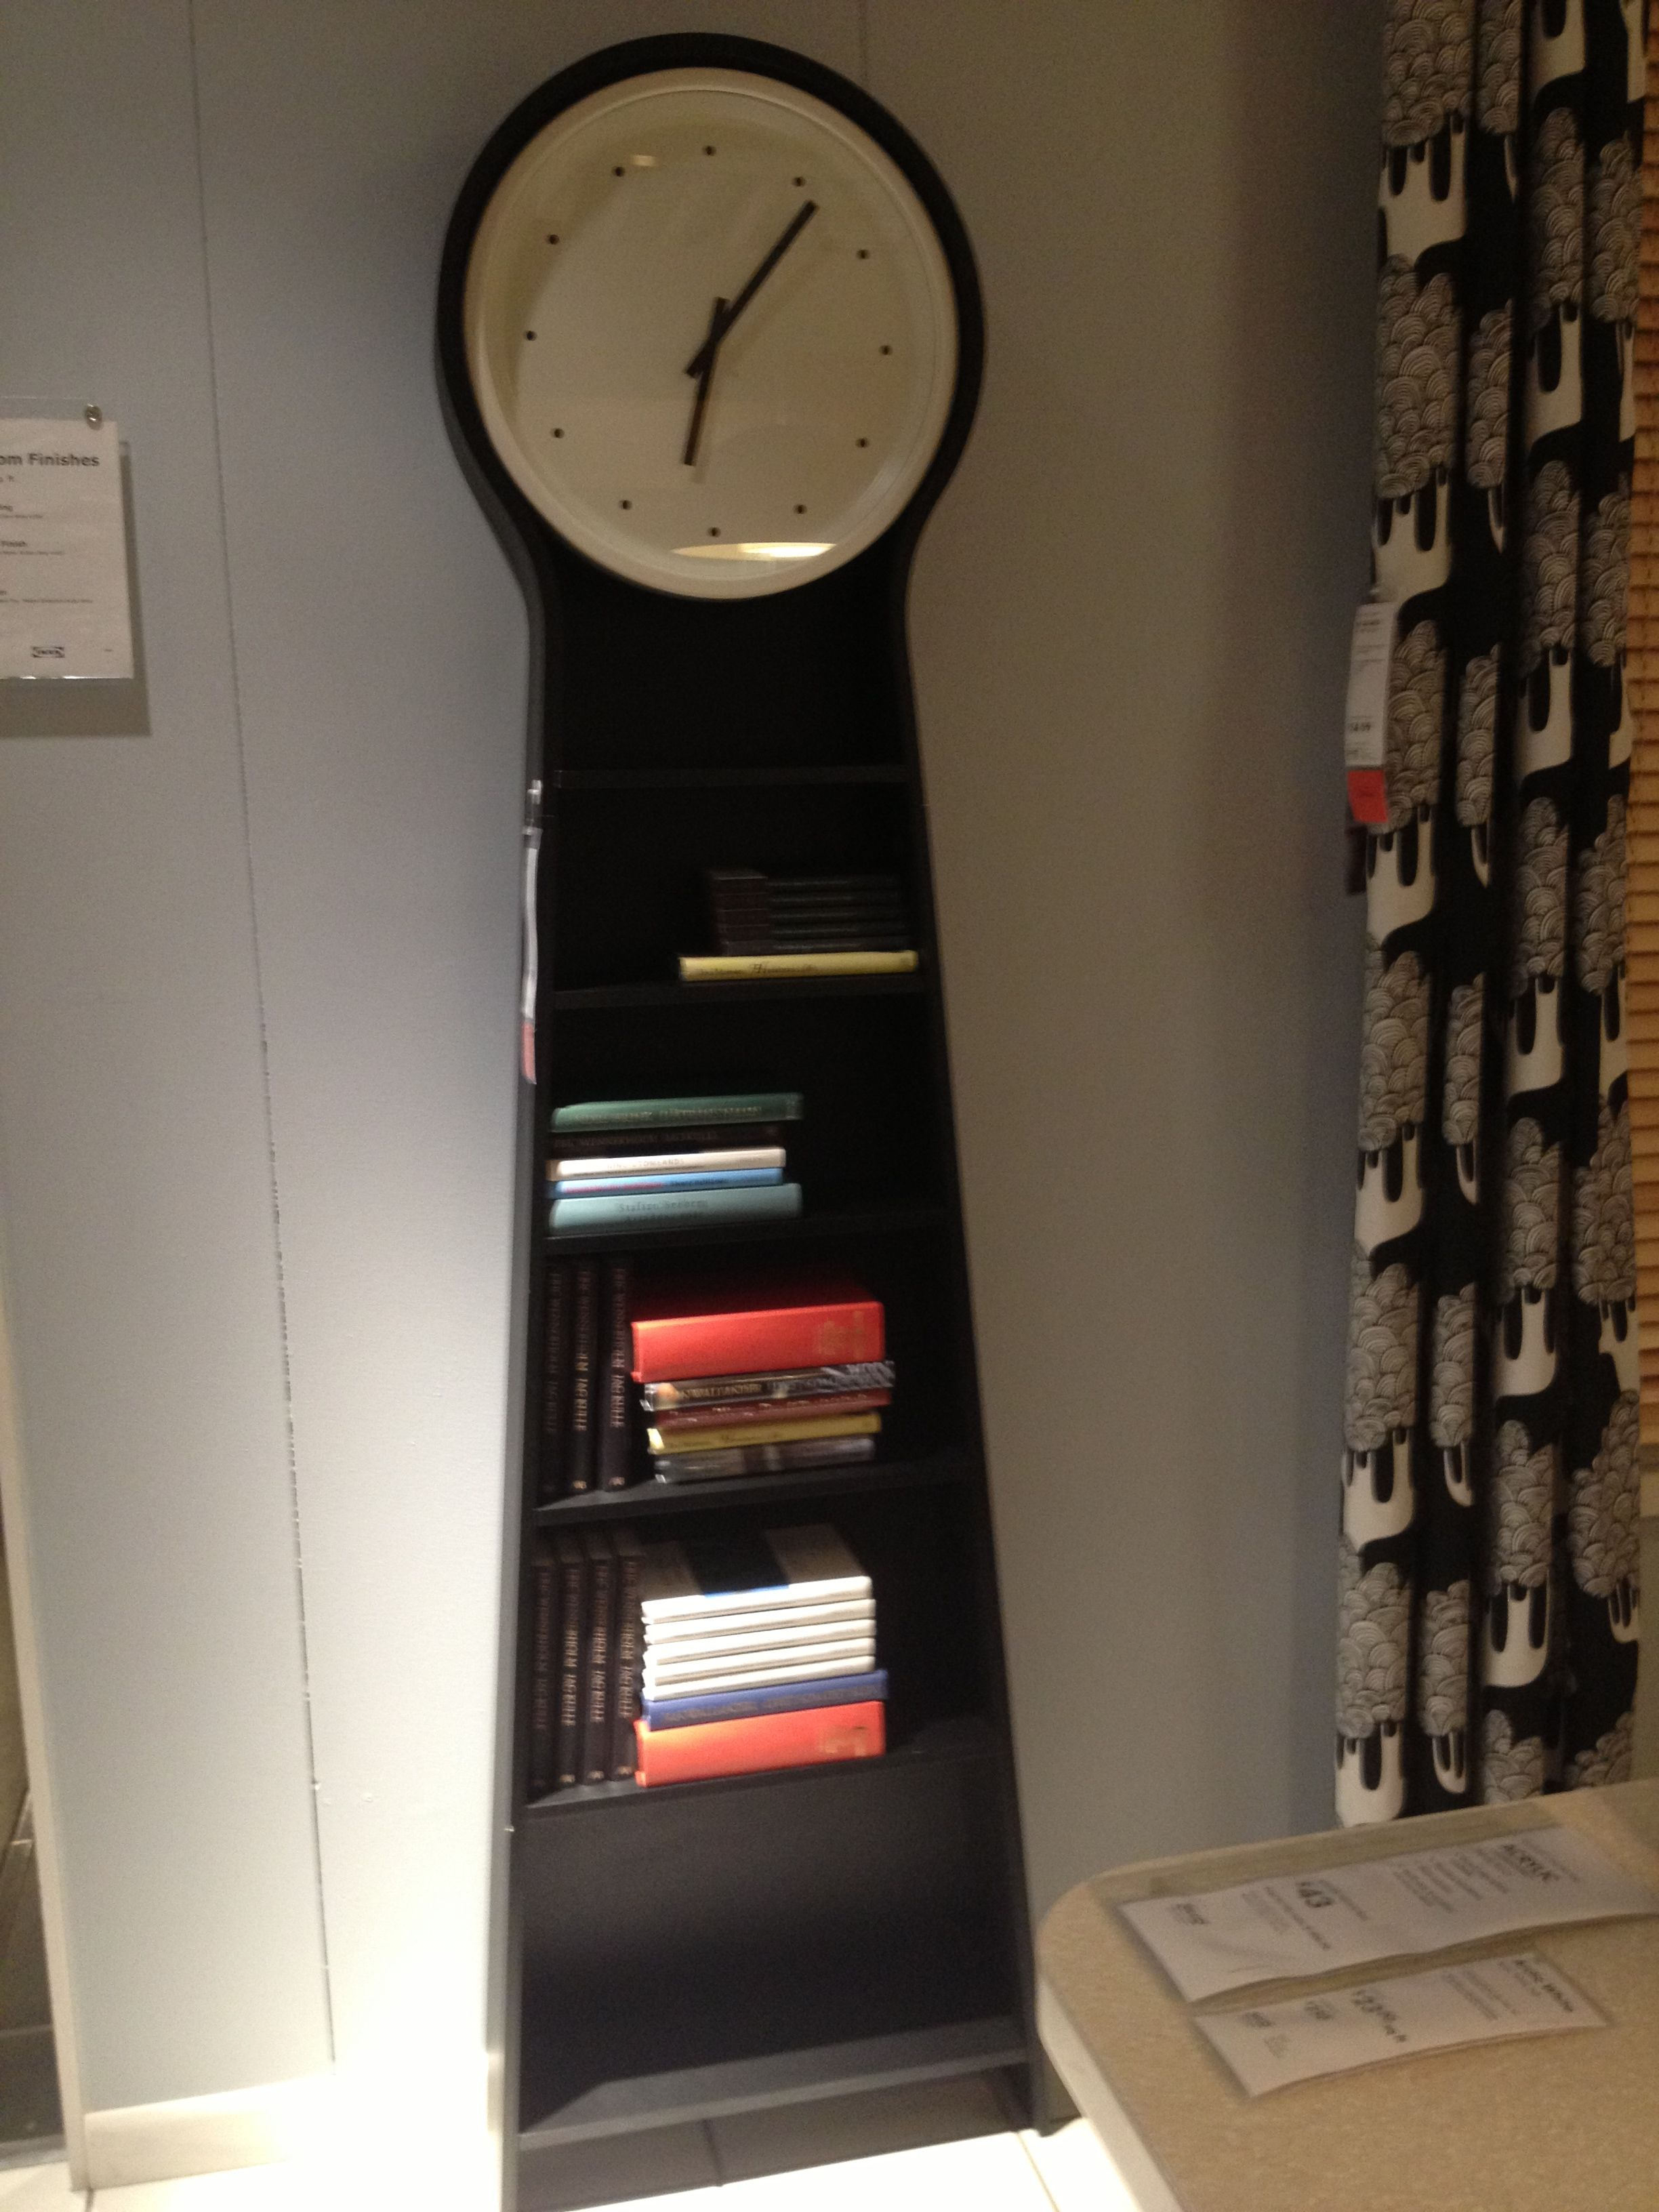 Cool Cuckoo Clocks Cool Clock Bookcase At Ikea Clocks What Time Is It